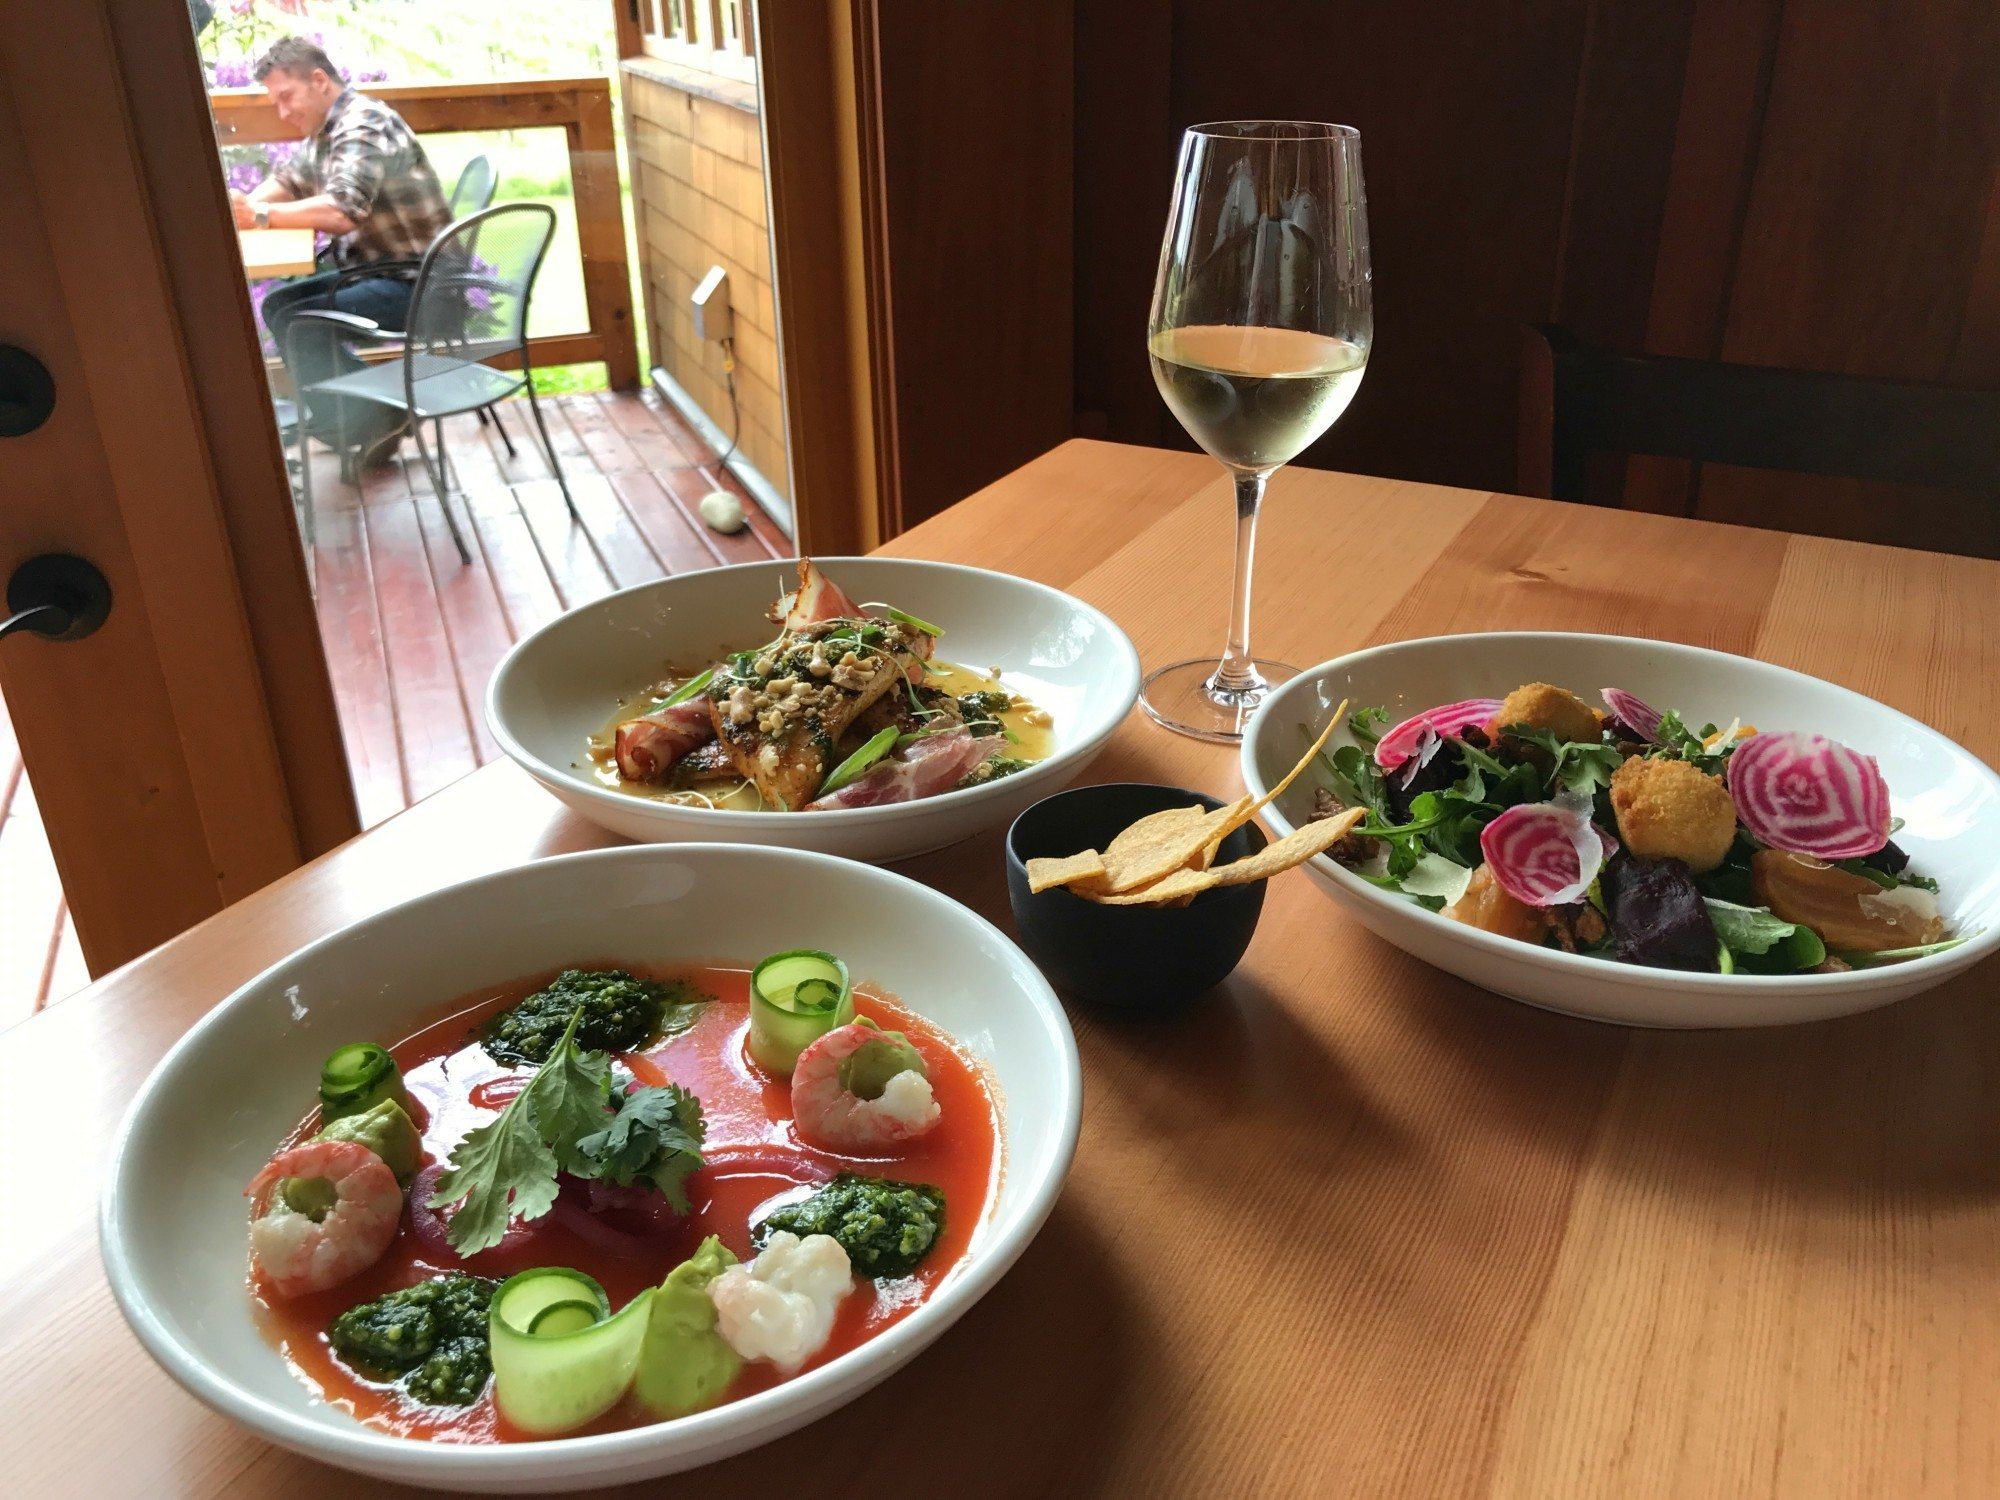 Fine Dining Victoria - Unsworth winery in the Cowichan valley photo: Heatheronhertravels.com